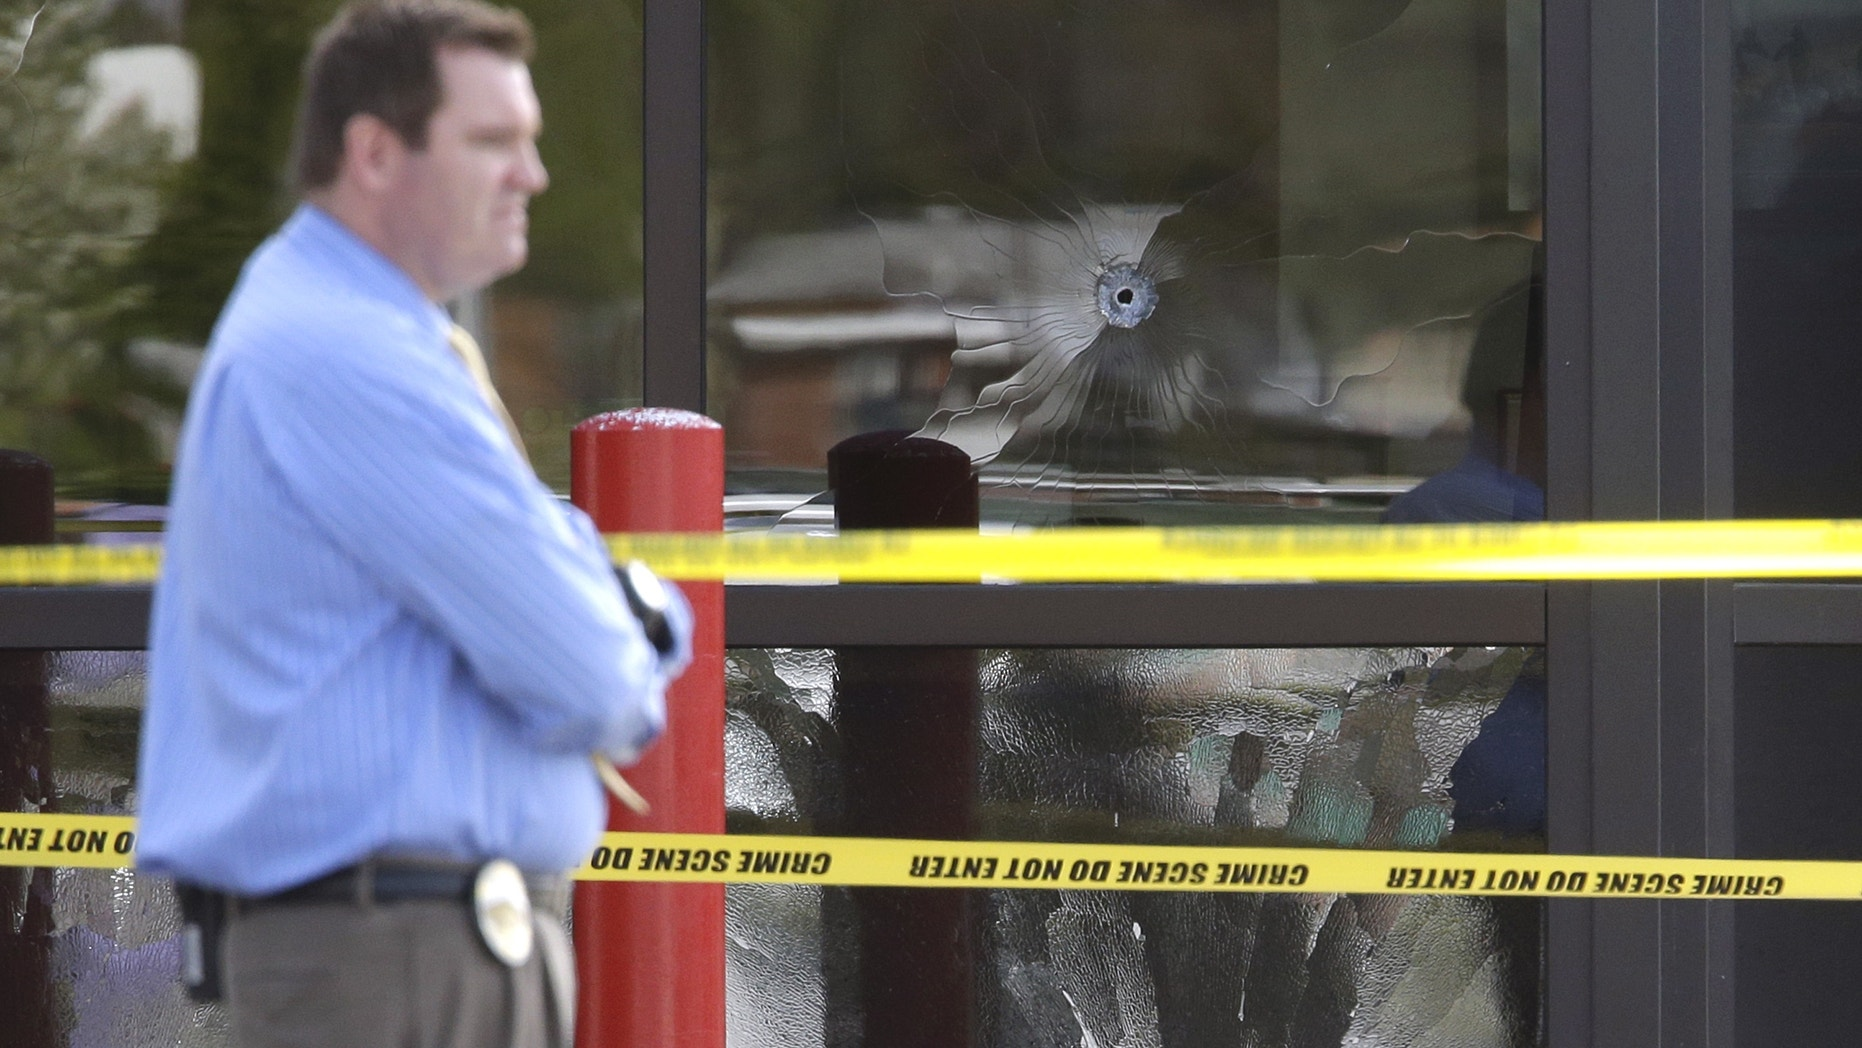 April 29, 2013: A West Valley City Police Officer stands near a bullet shattered window at the West Valley City Police Department in West Valley City, Utah.